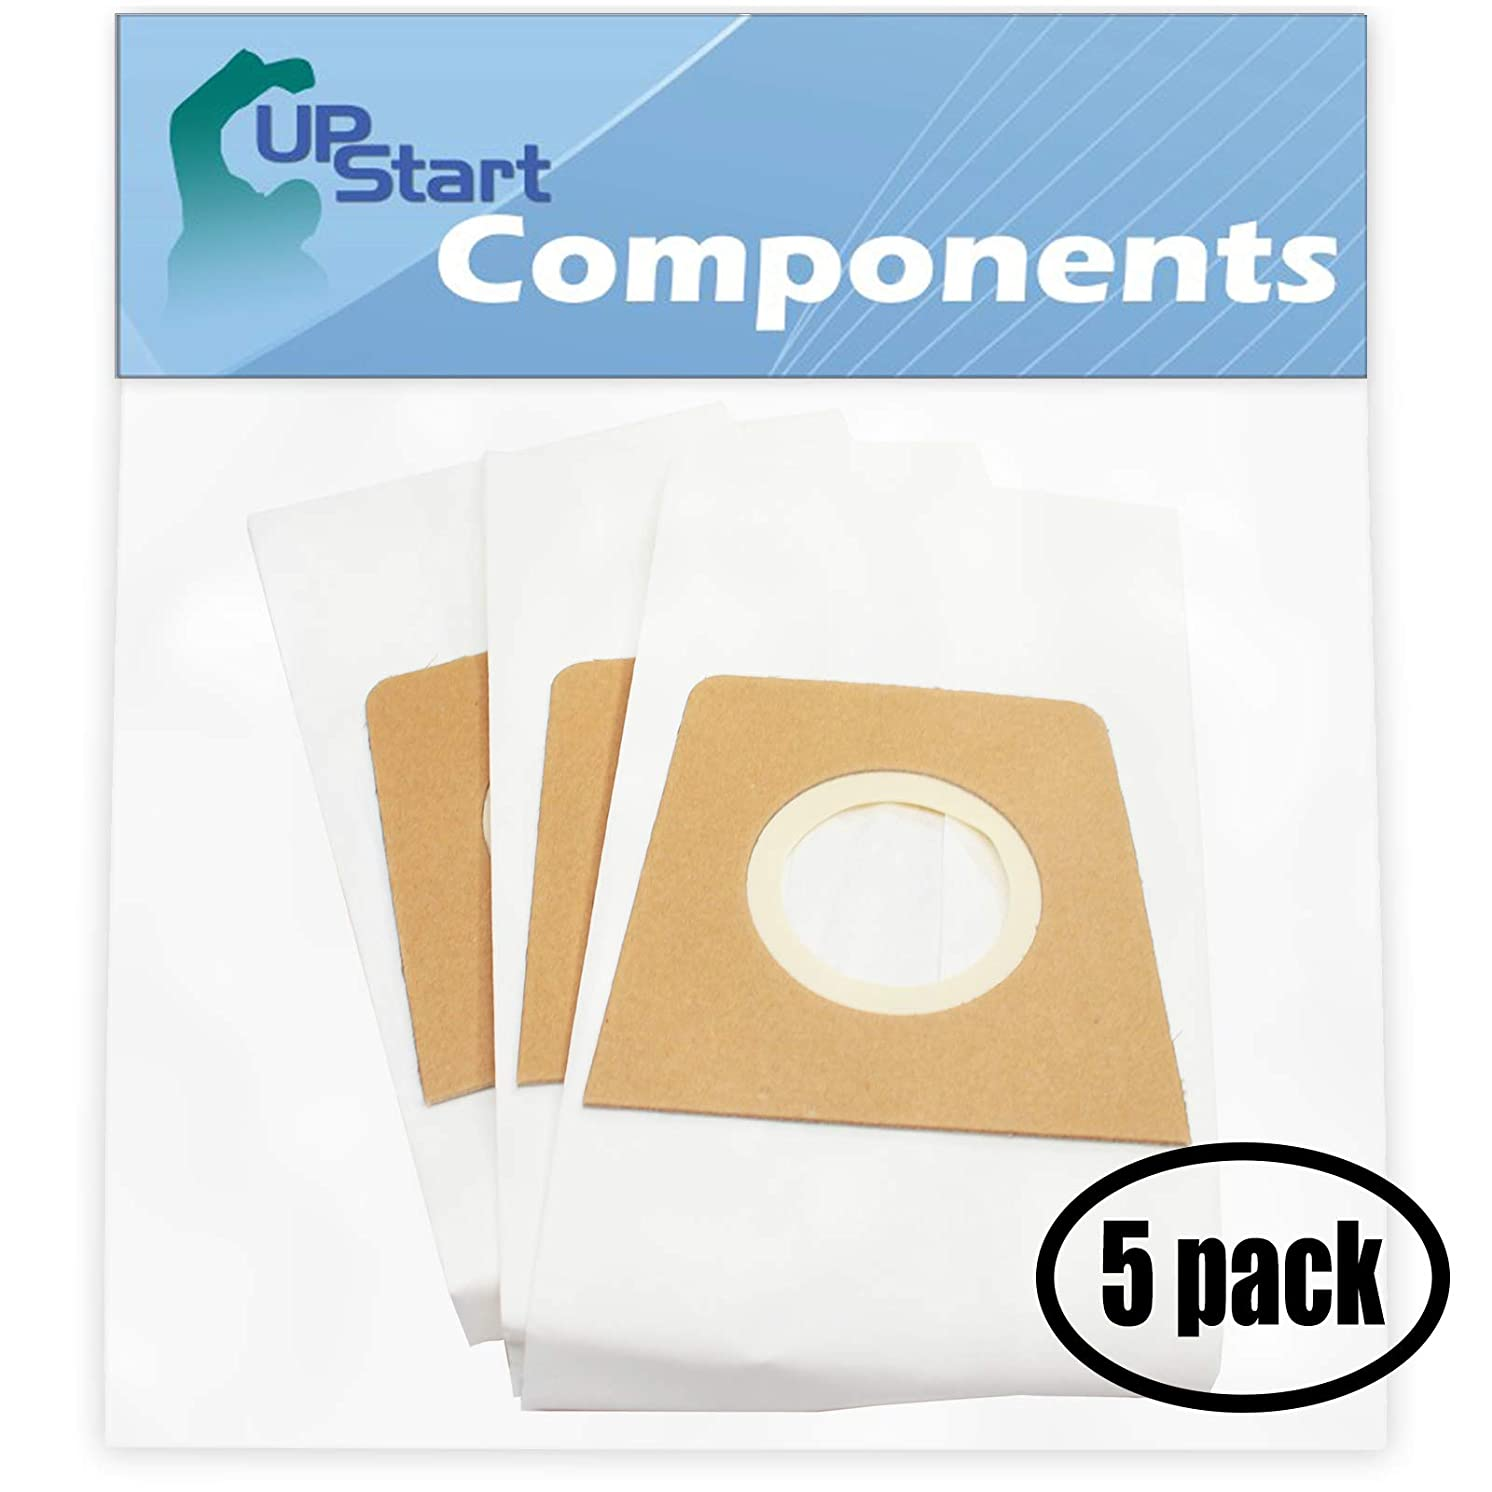 UpStart Battery 15 Replacement for Dirt Devil M086010 Vacuum Bags - Compatible with Dirt Devil 3920047001, 3920048001, Type U Vacuum Bags (5 Pack - 3 Vacuum Bags per Pack)